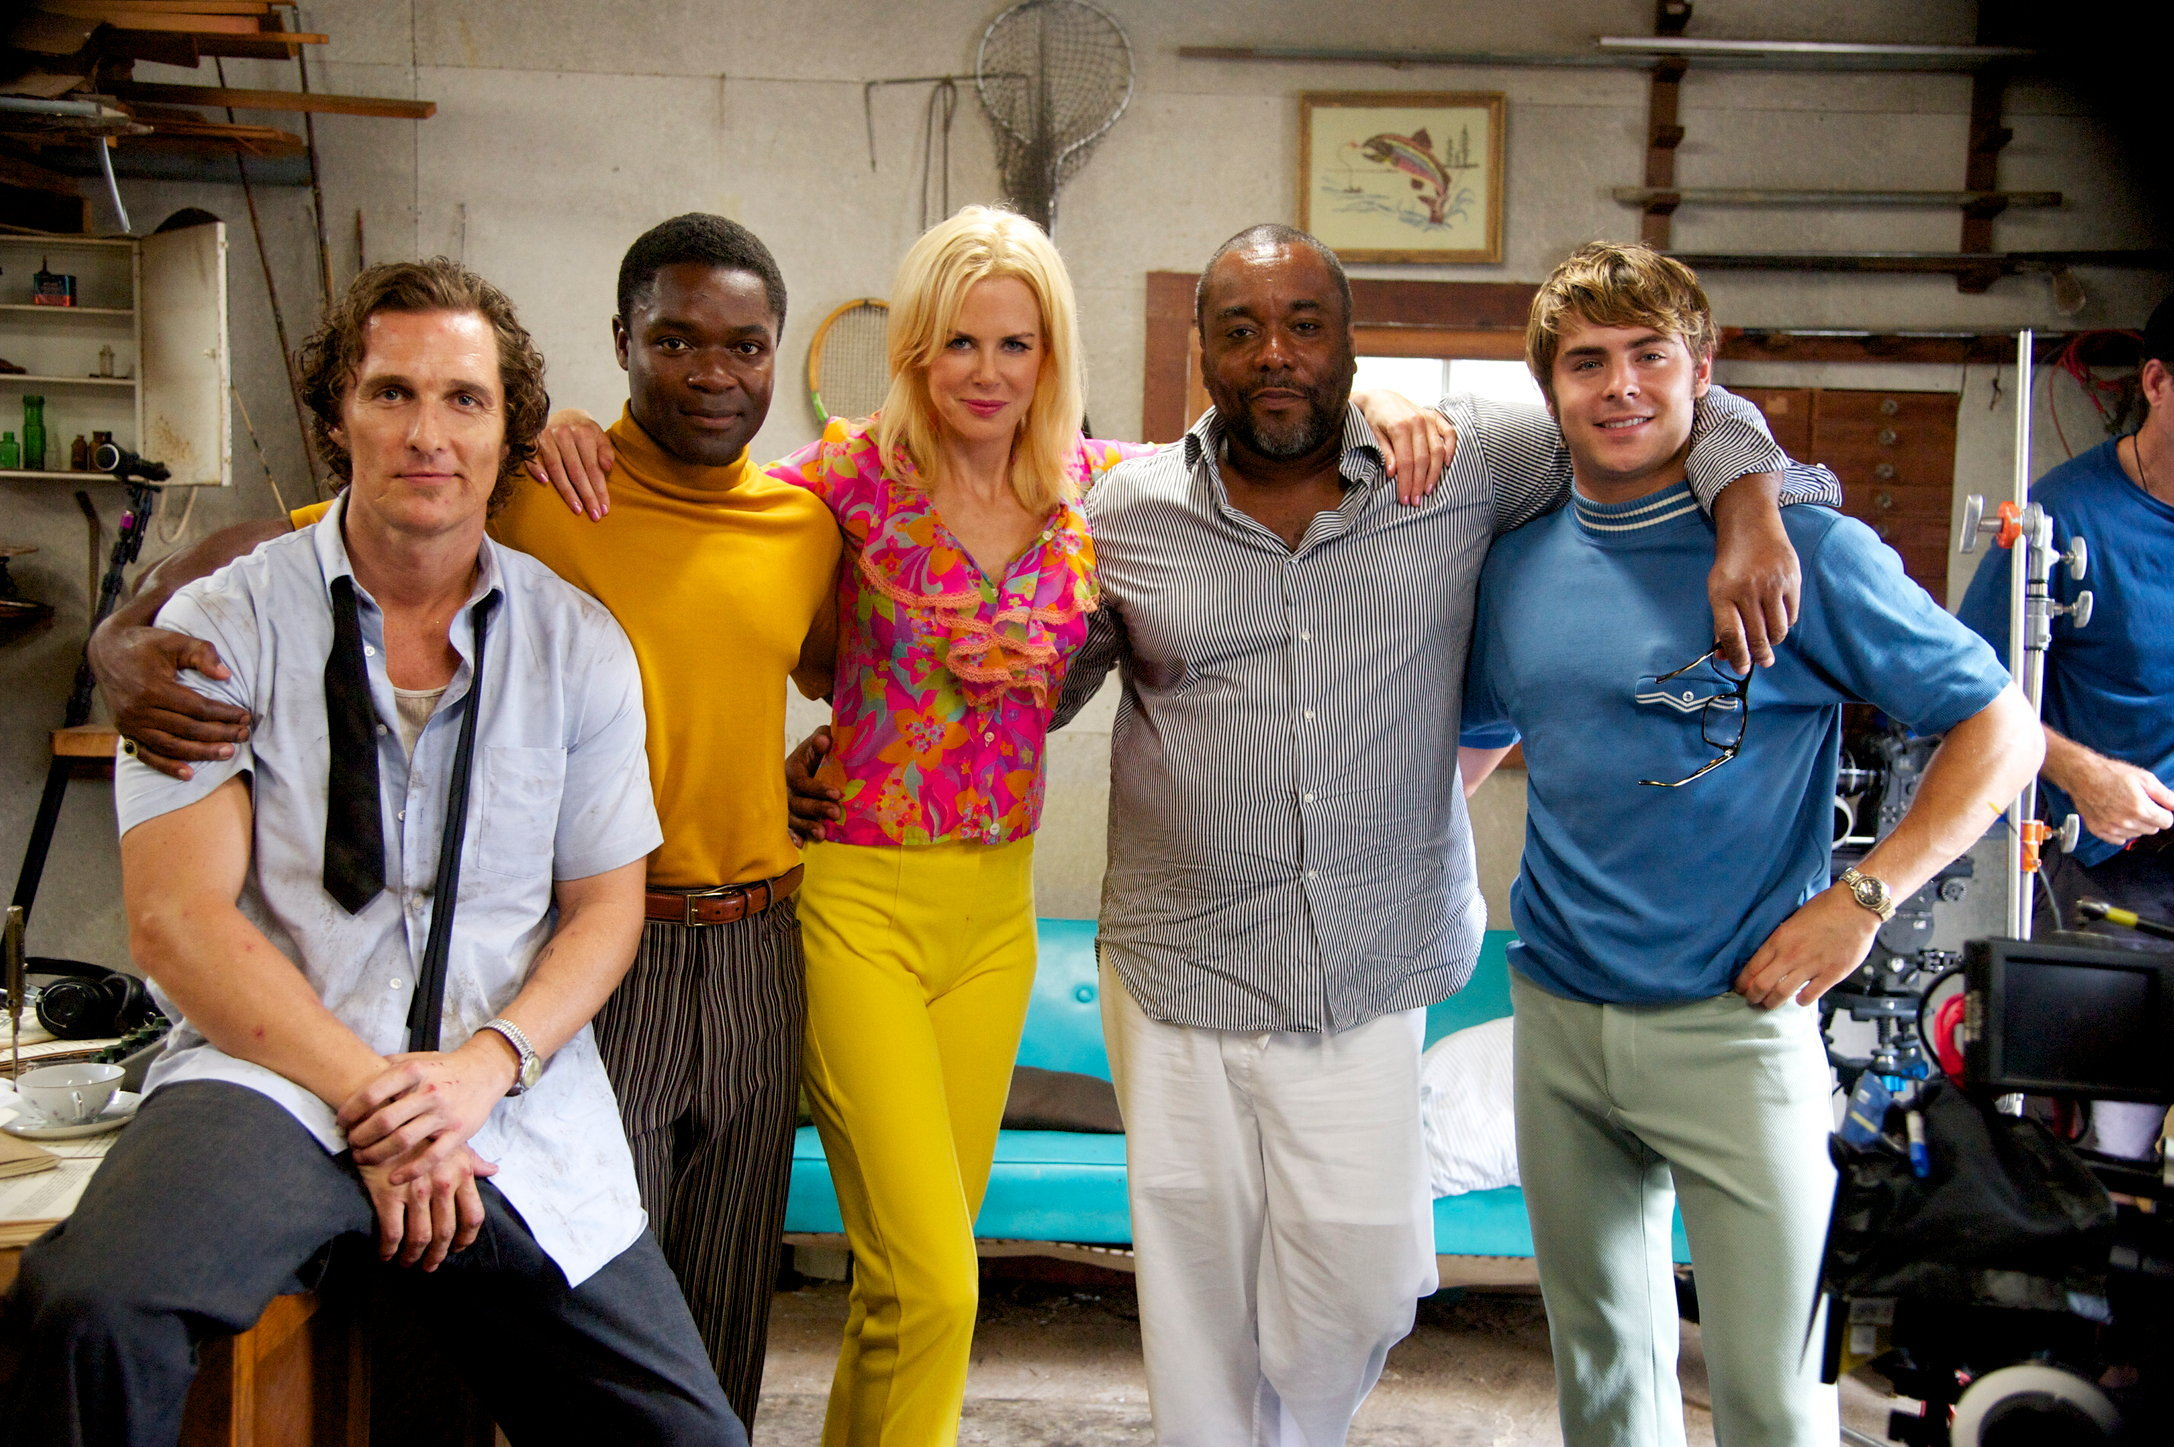 Matthew McConaughey, David Oyelowo, Nicole Kidman, Director Lee Daniels & Zac Efron - THE PAPERBOY